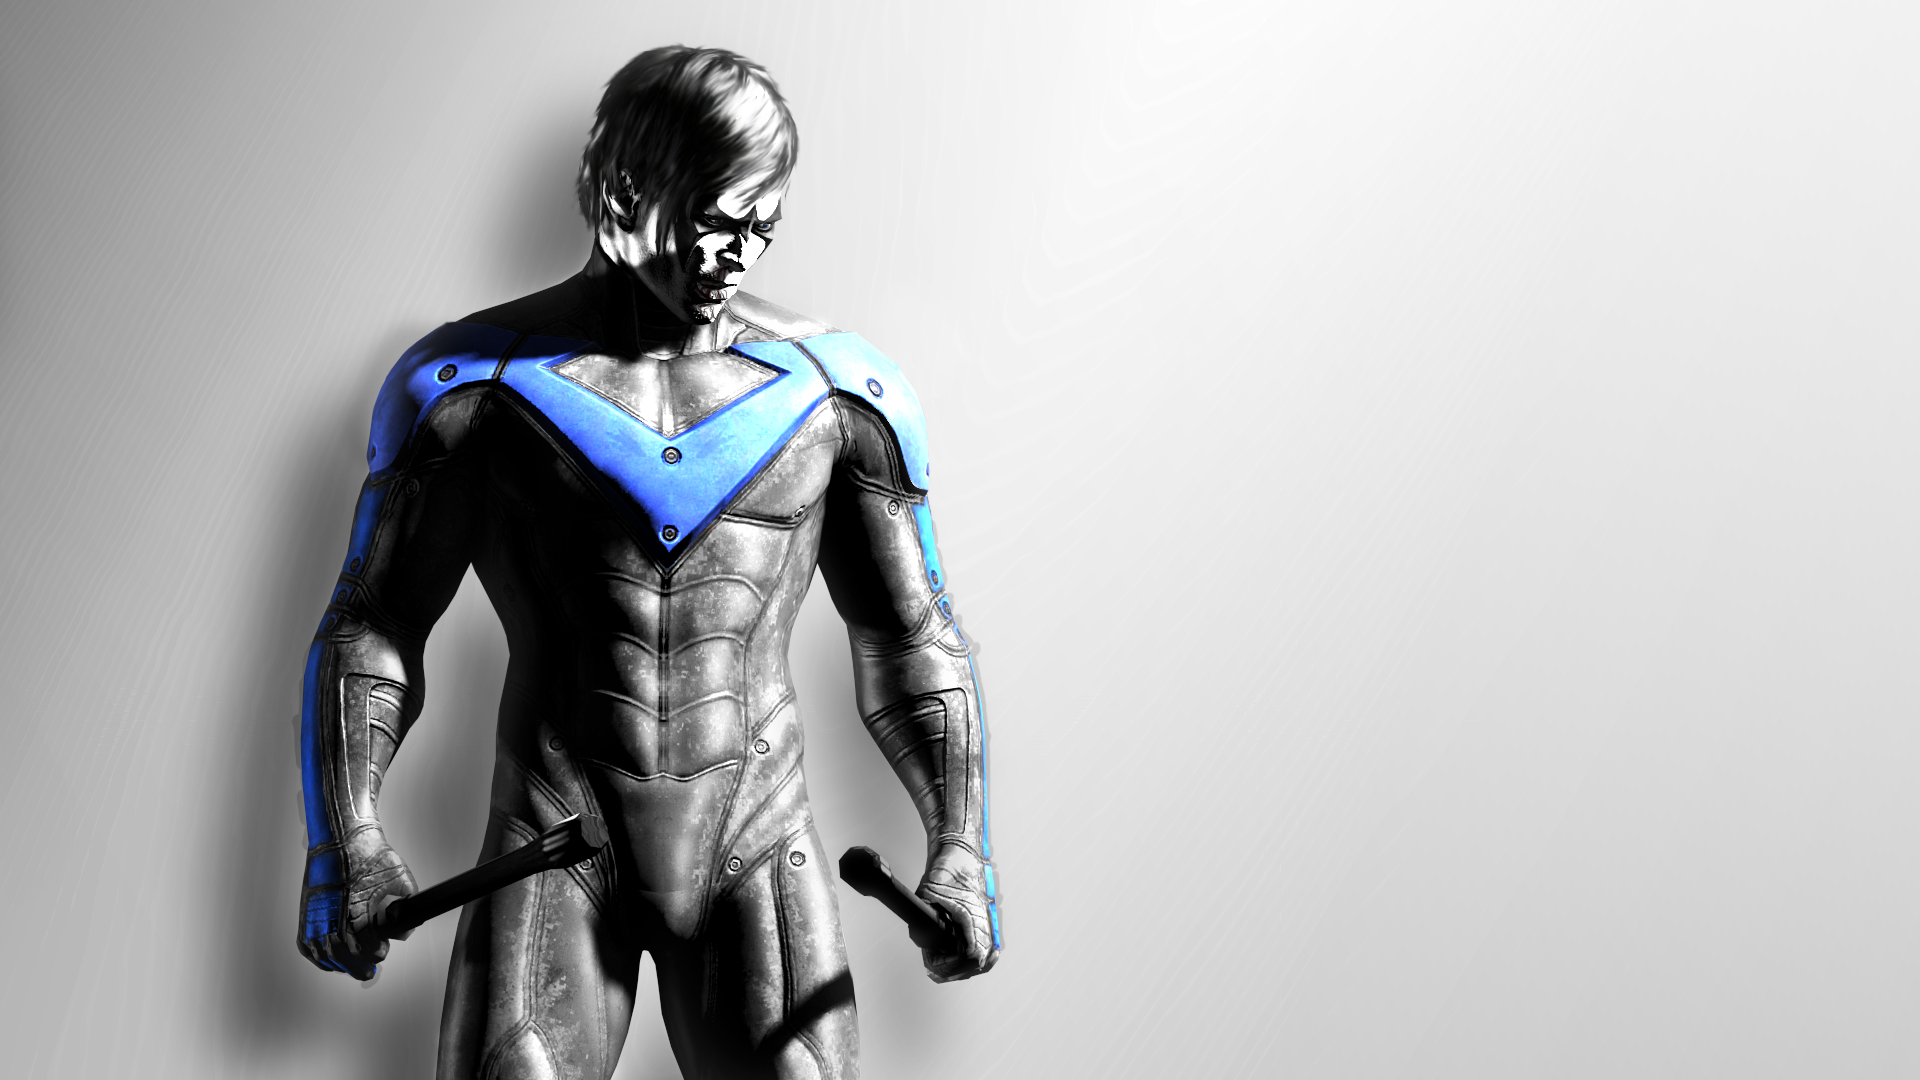 The Nightwing by Rammkap 1920x1080